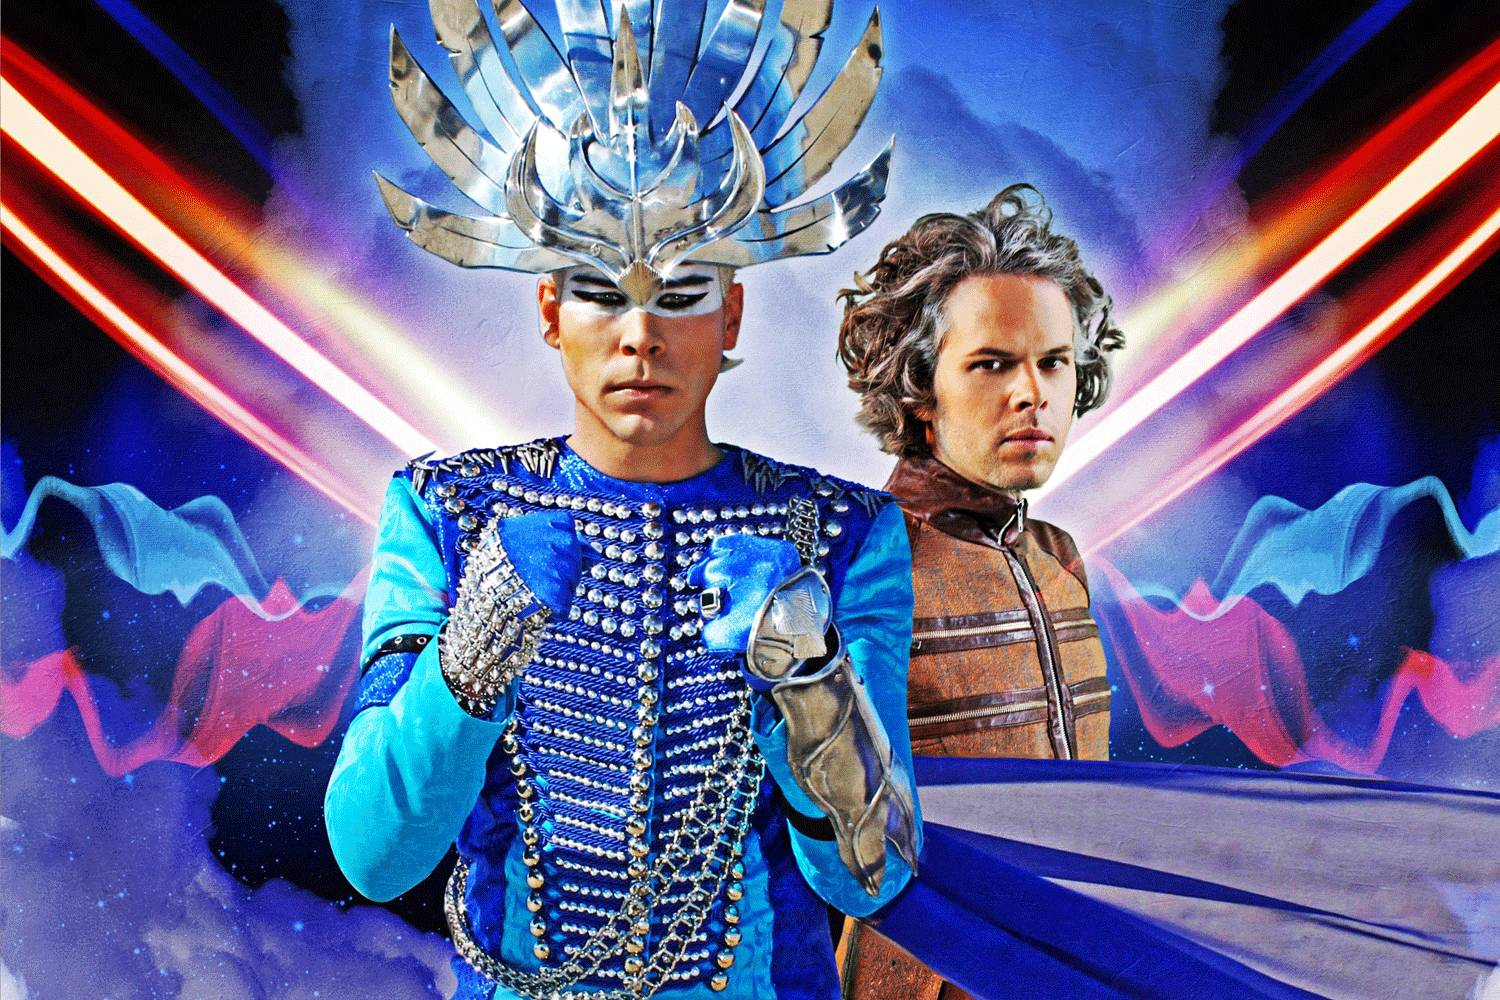 empire of the sun Empire of the sun burst onto the australian music scene in 2008 with their smash hit debut single walking on a dream.